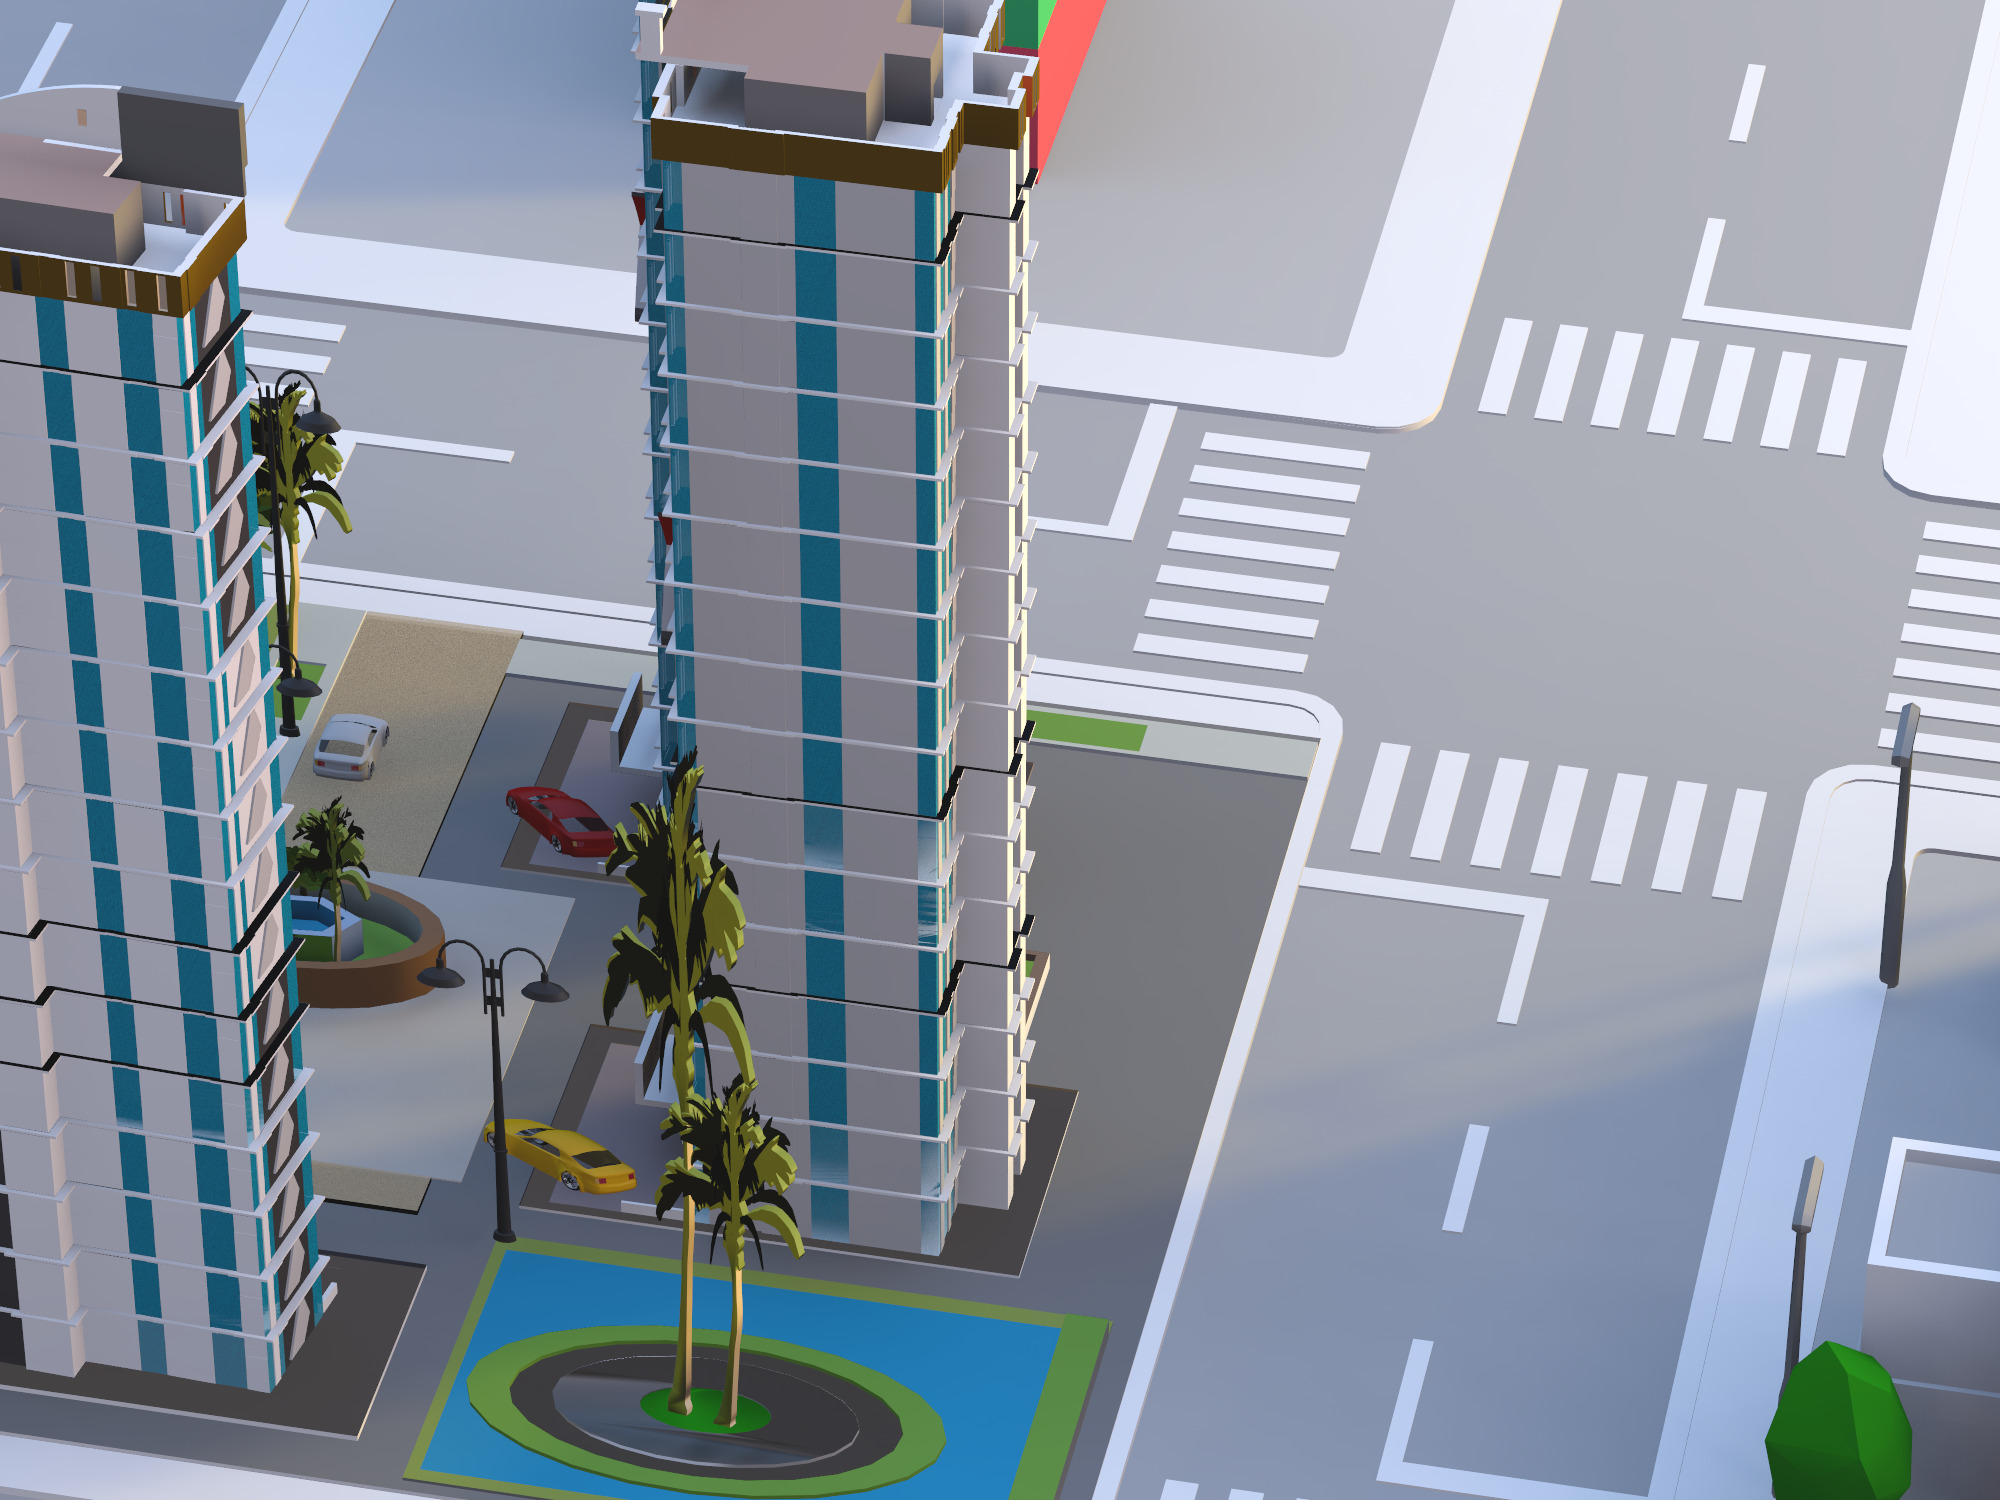 Build a city - drag and drop objects (copy) - 3D design by Adnane